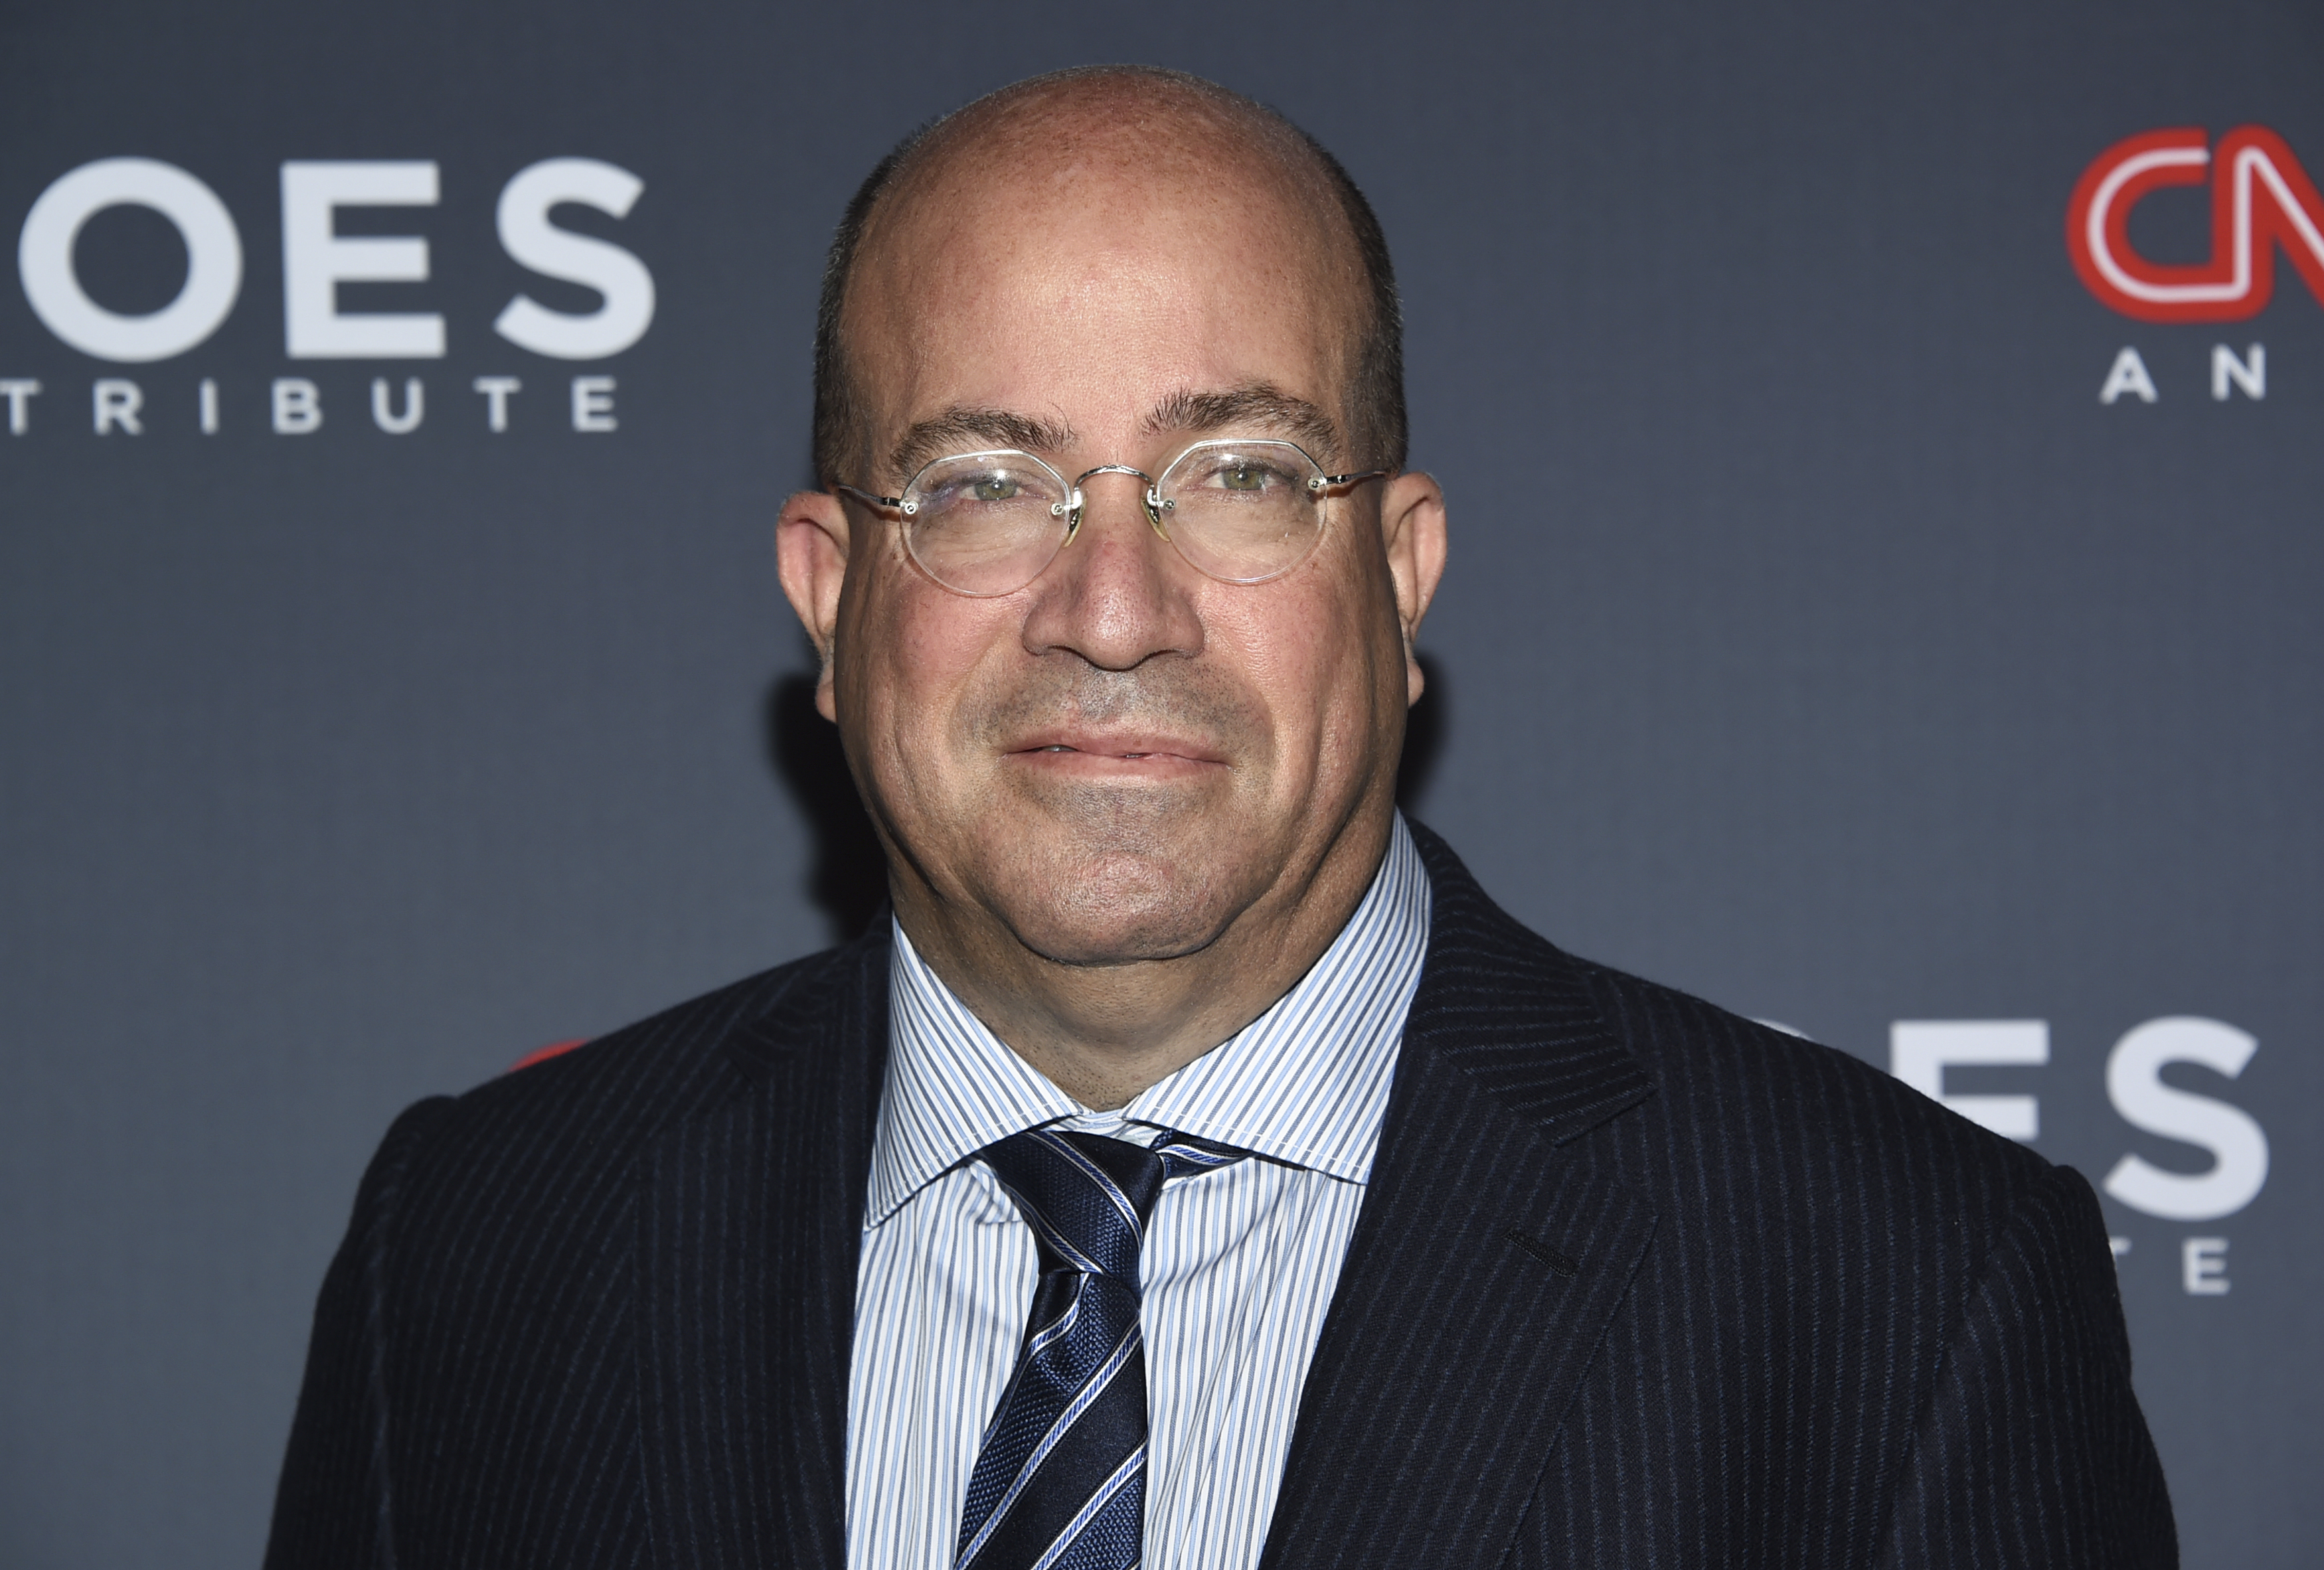 FILE - In this Dec. 17, 2017 file photo, CNN president Jeff Zucker attends the 11th annual CNN Heroes: An All-Star Tribute in New York. Zucker says that rival Fox News Channel is a propaganda machine that is doing an incredible disservice to the country. Zucker spoke Thursday at the Financial Times Future of News conference.  (Photo by Evan Agostini/Invision/AP, File)